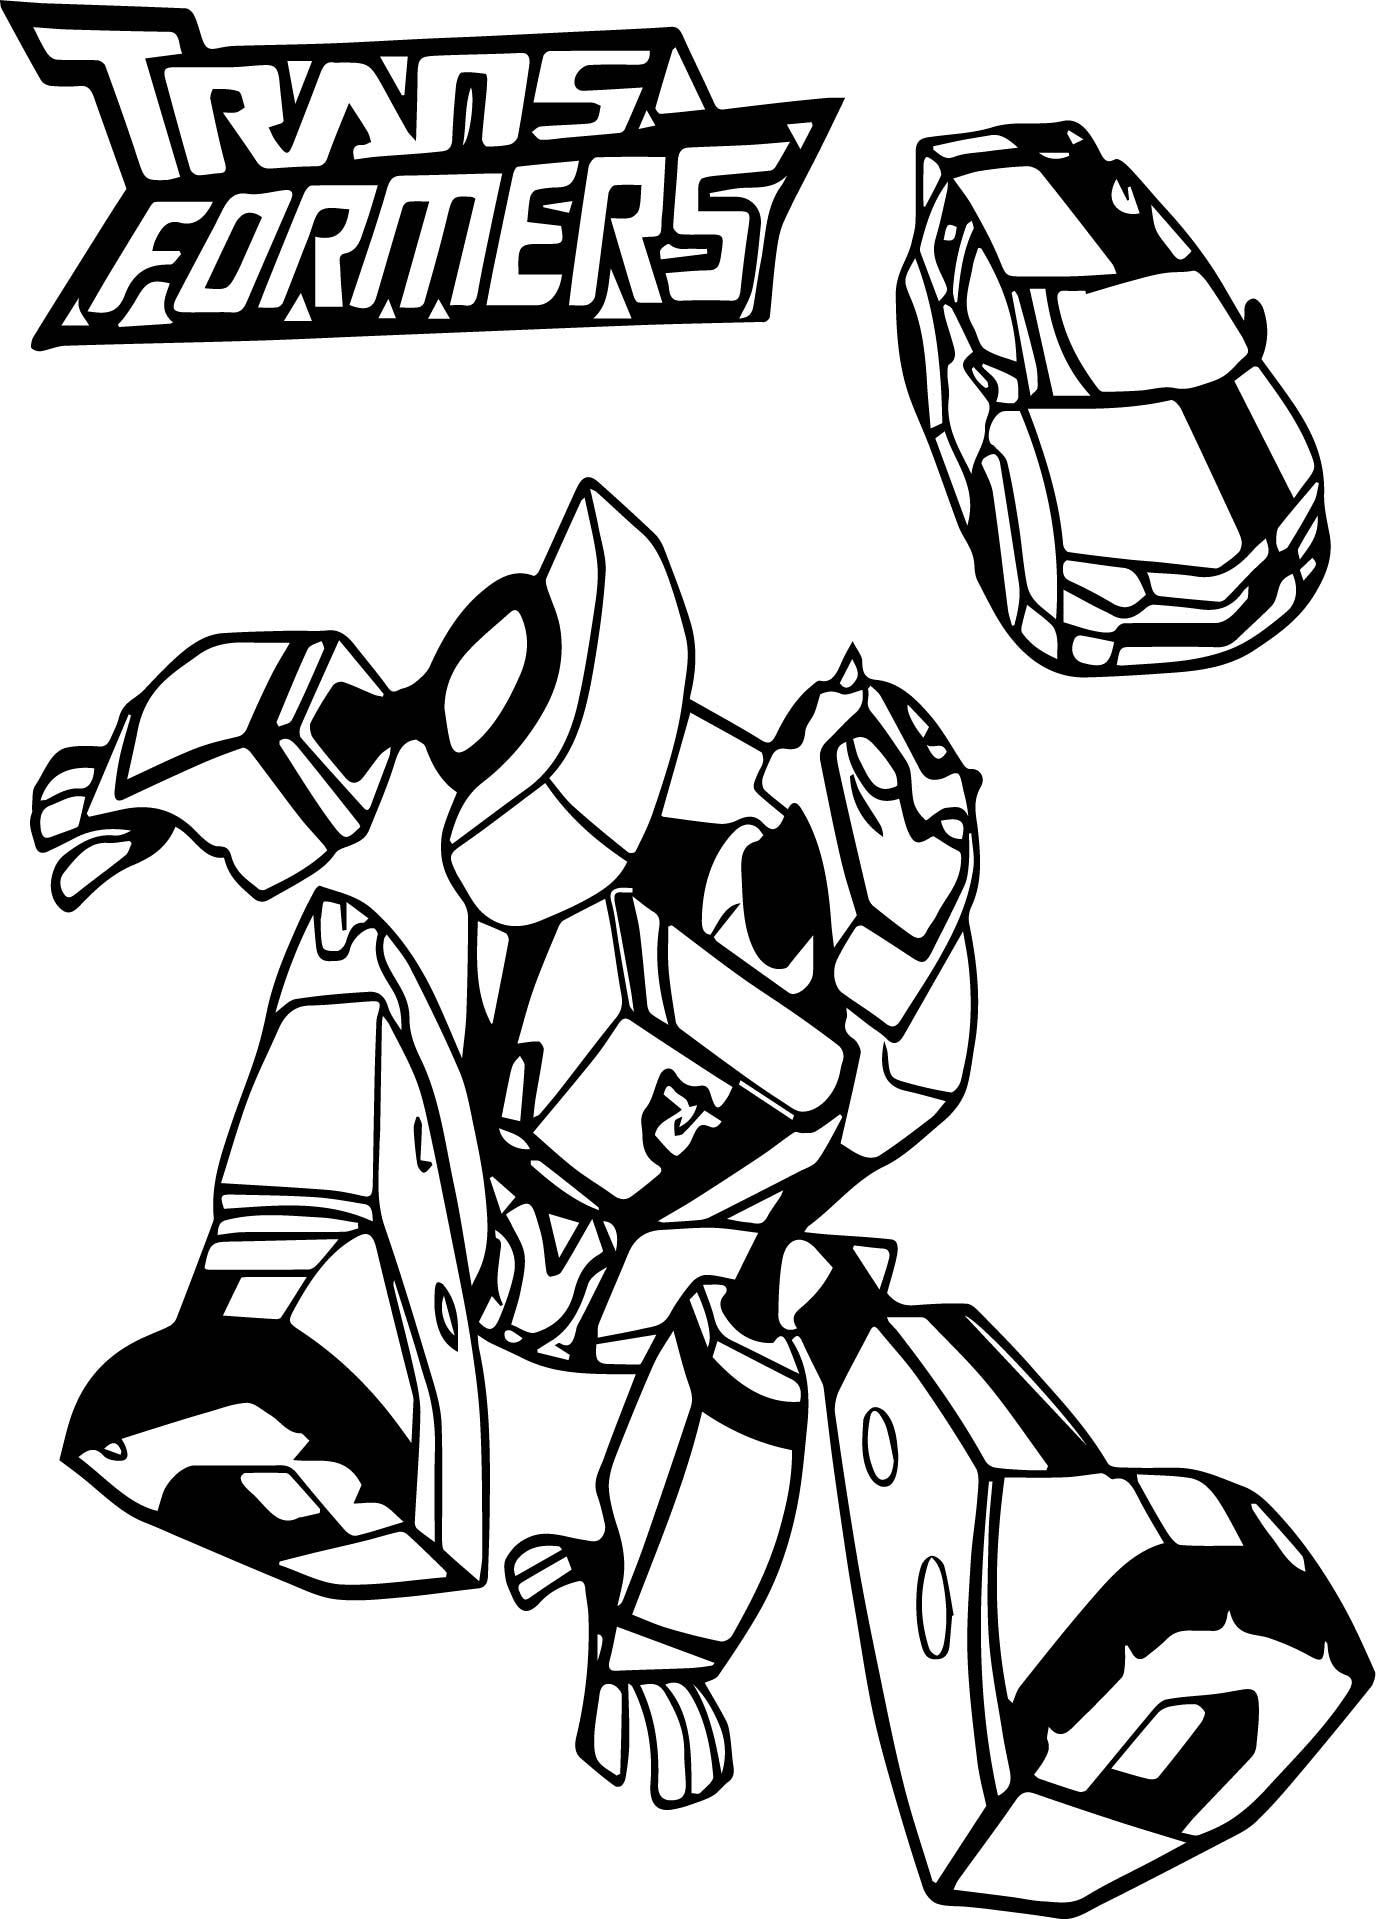 Bumblebee Car Transformers Coloring Page Wecoloringpage